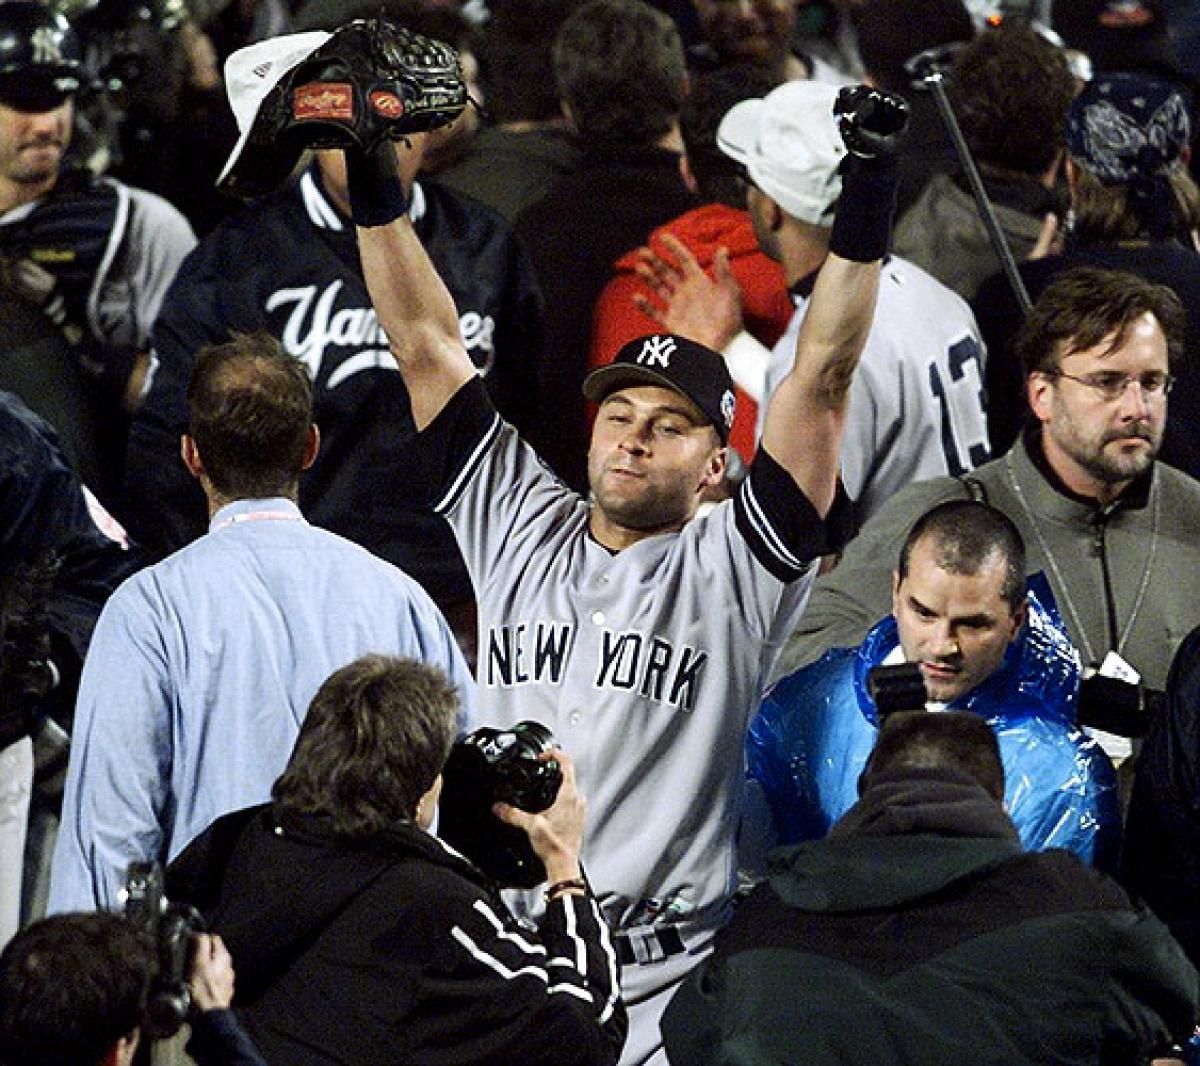 Oct 26 2000 Then Homers Again In Game 5 As The Bombers Clinch Their Third Straight Title Jeter Takes Home World Derek Jeter Ny Yankees Yankees Baseball